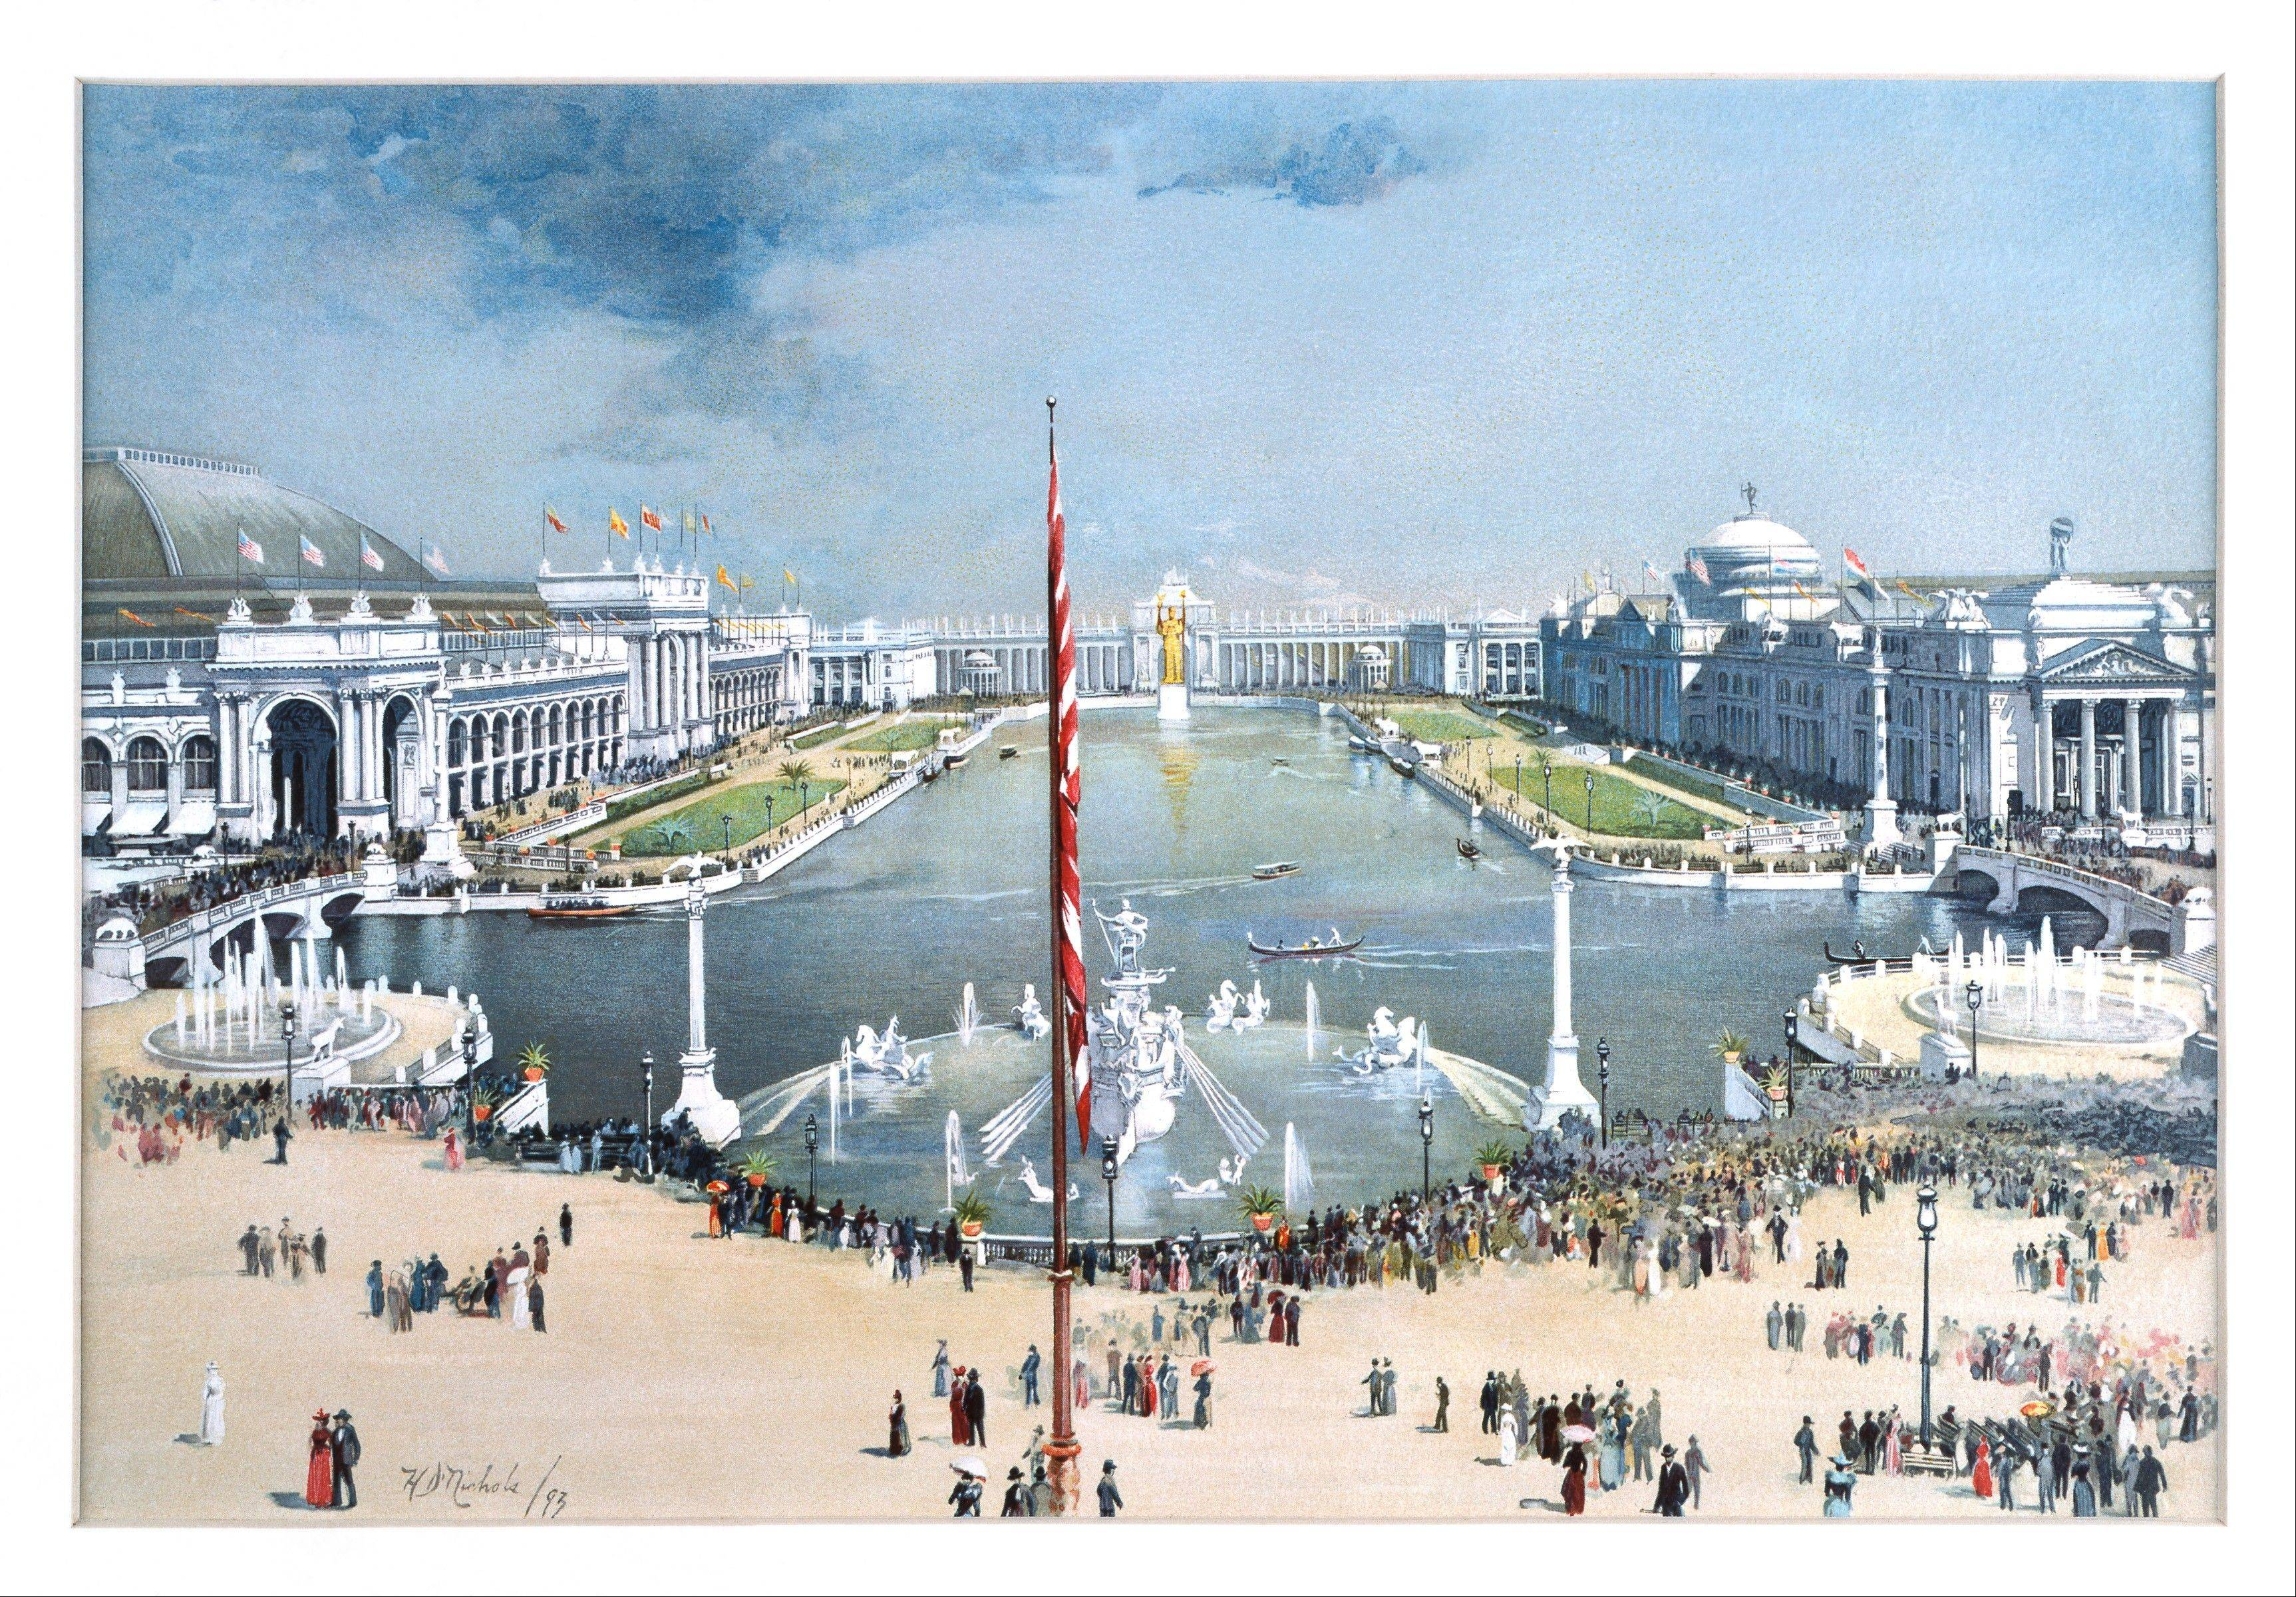 The 1893 World's Fair covered 630 acres in Chicago's Jackson Park and the Midway Plaisance — a narrow strip of land designated as an amusement area.